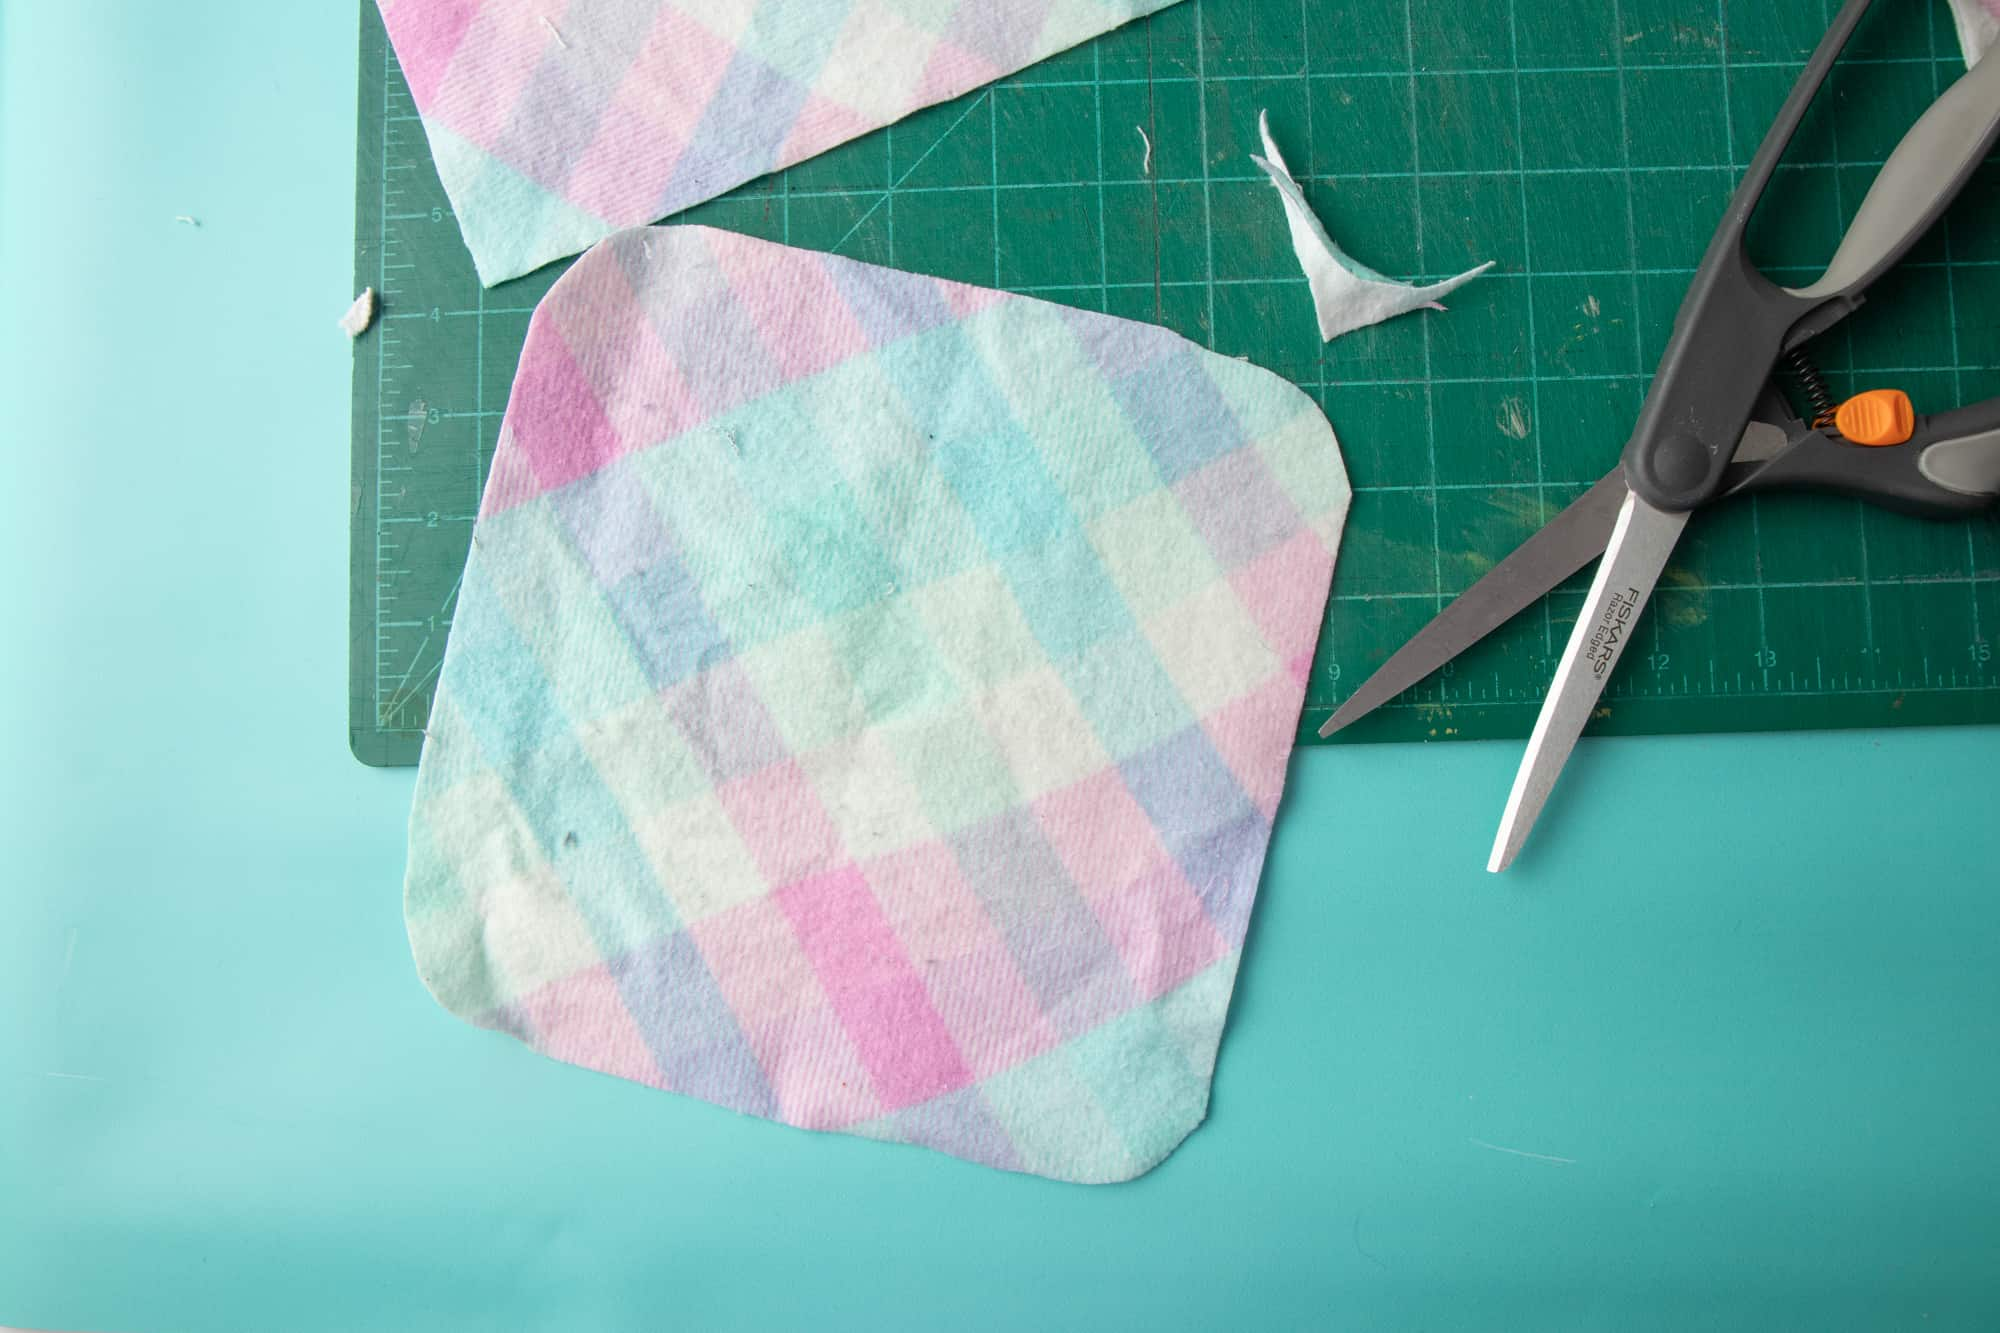 Freshly cut cloth sits on a sewing board on a blue background. A scrap of fabric and scissors sit nearby.